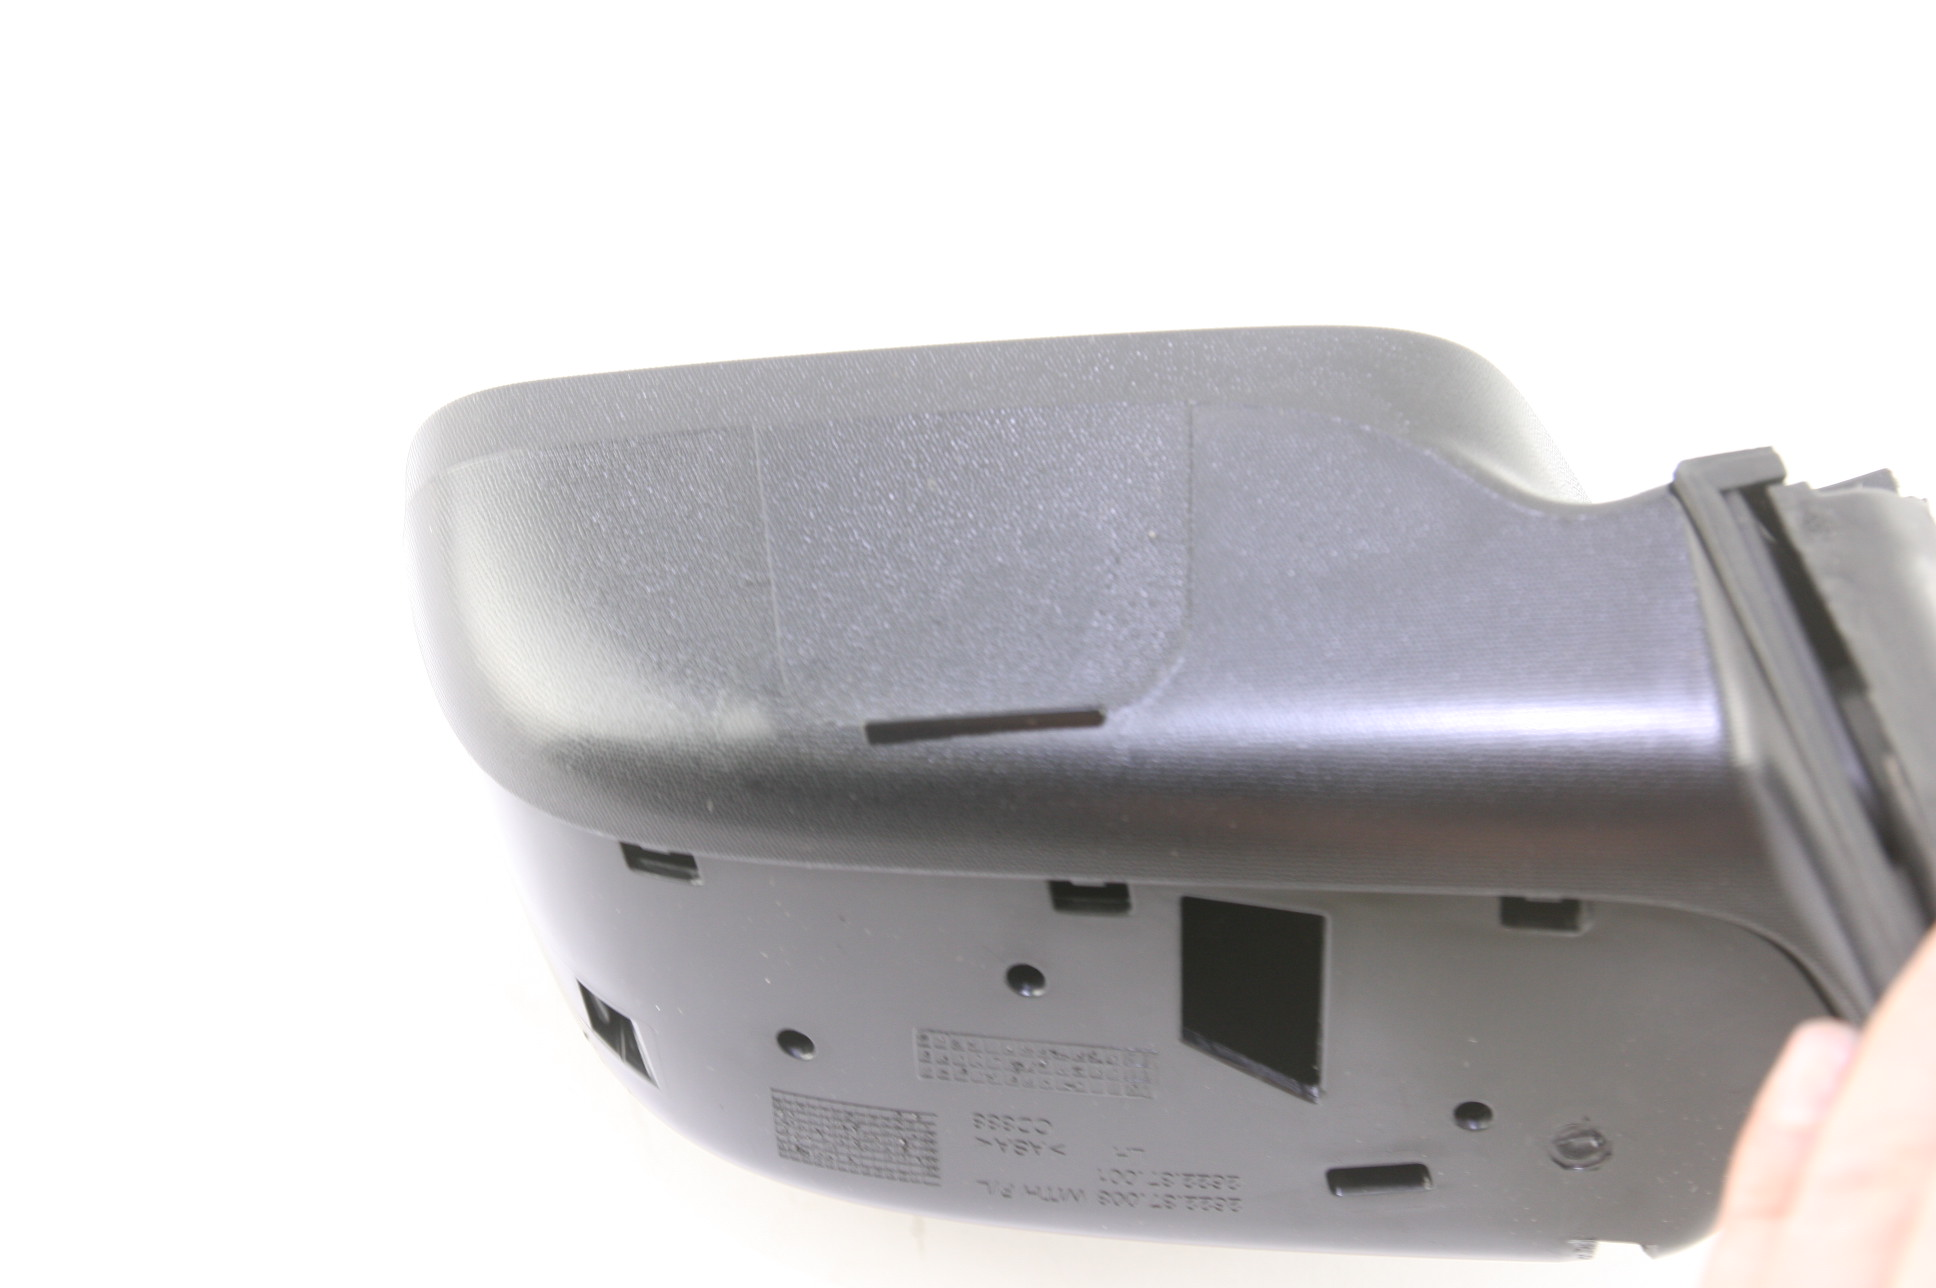 *** New Ford OEM 6E5Z17683ACP 06-10 Ford Fusion LH Side Power Mirror Assembly - image 9